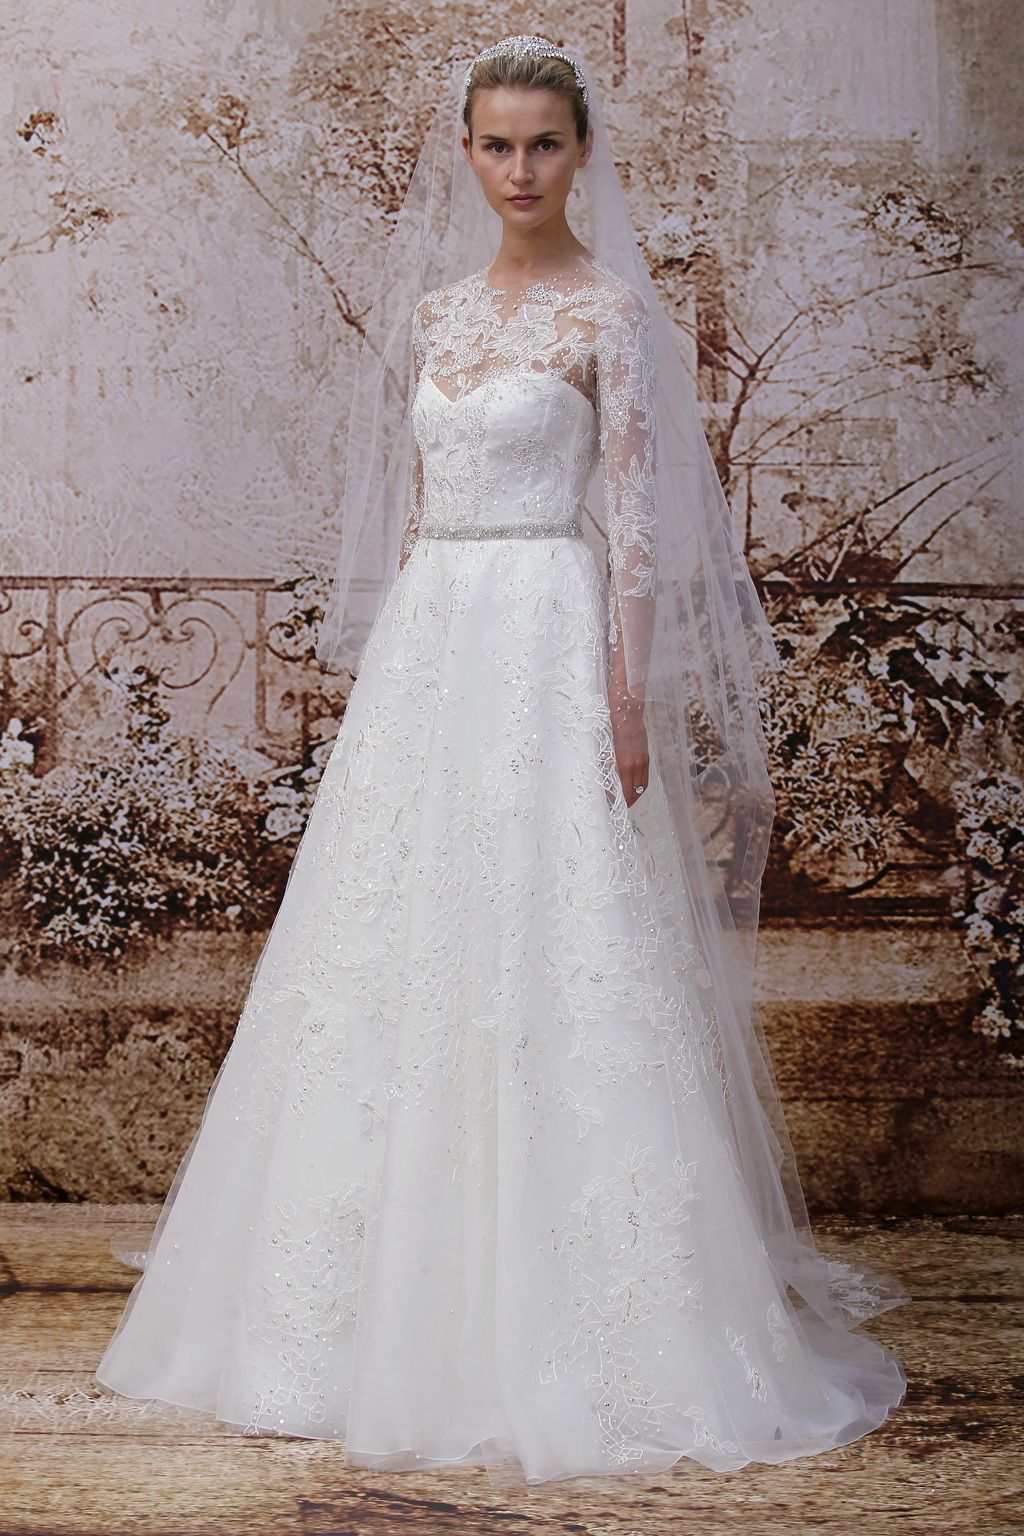 Monique-lhuillier-fall-2014-wedding-dress-look-21.full